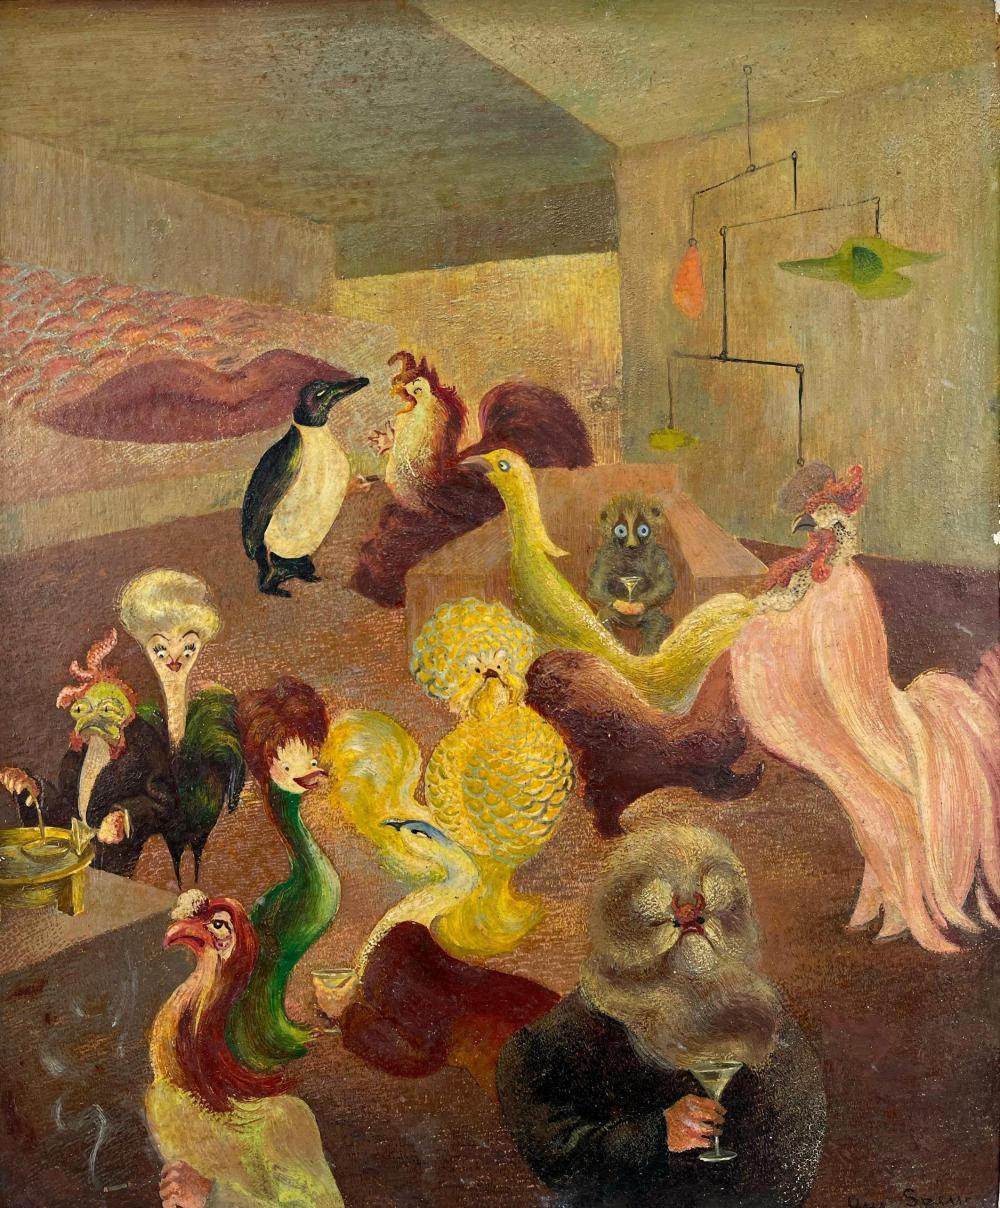 Anthropomorphic Birds at Cocktail Party with Alexander Calder Mobile, Surrealist School, Oil Painting